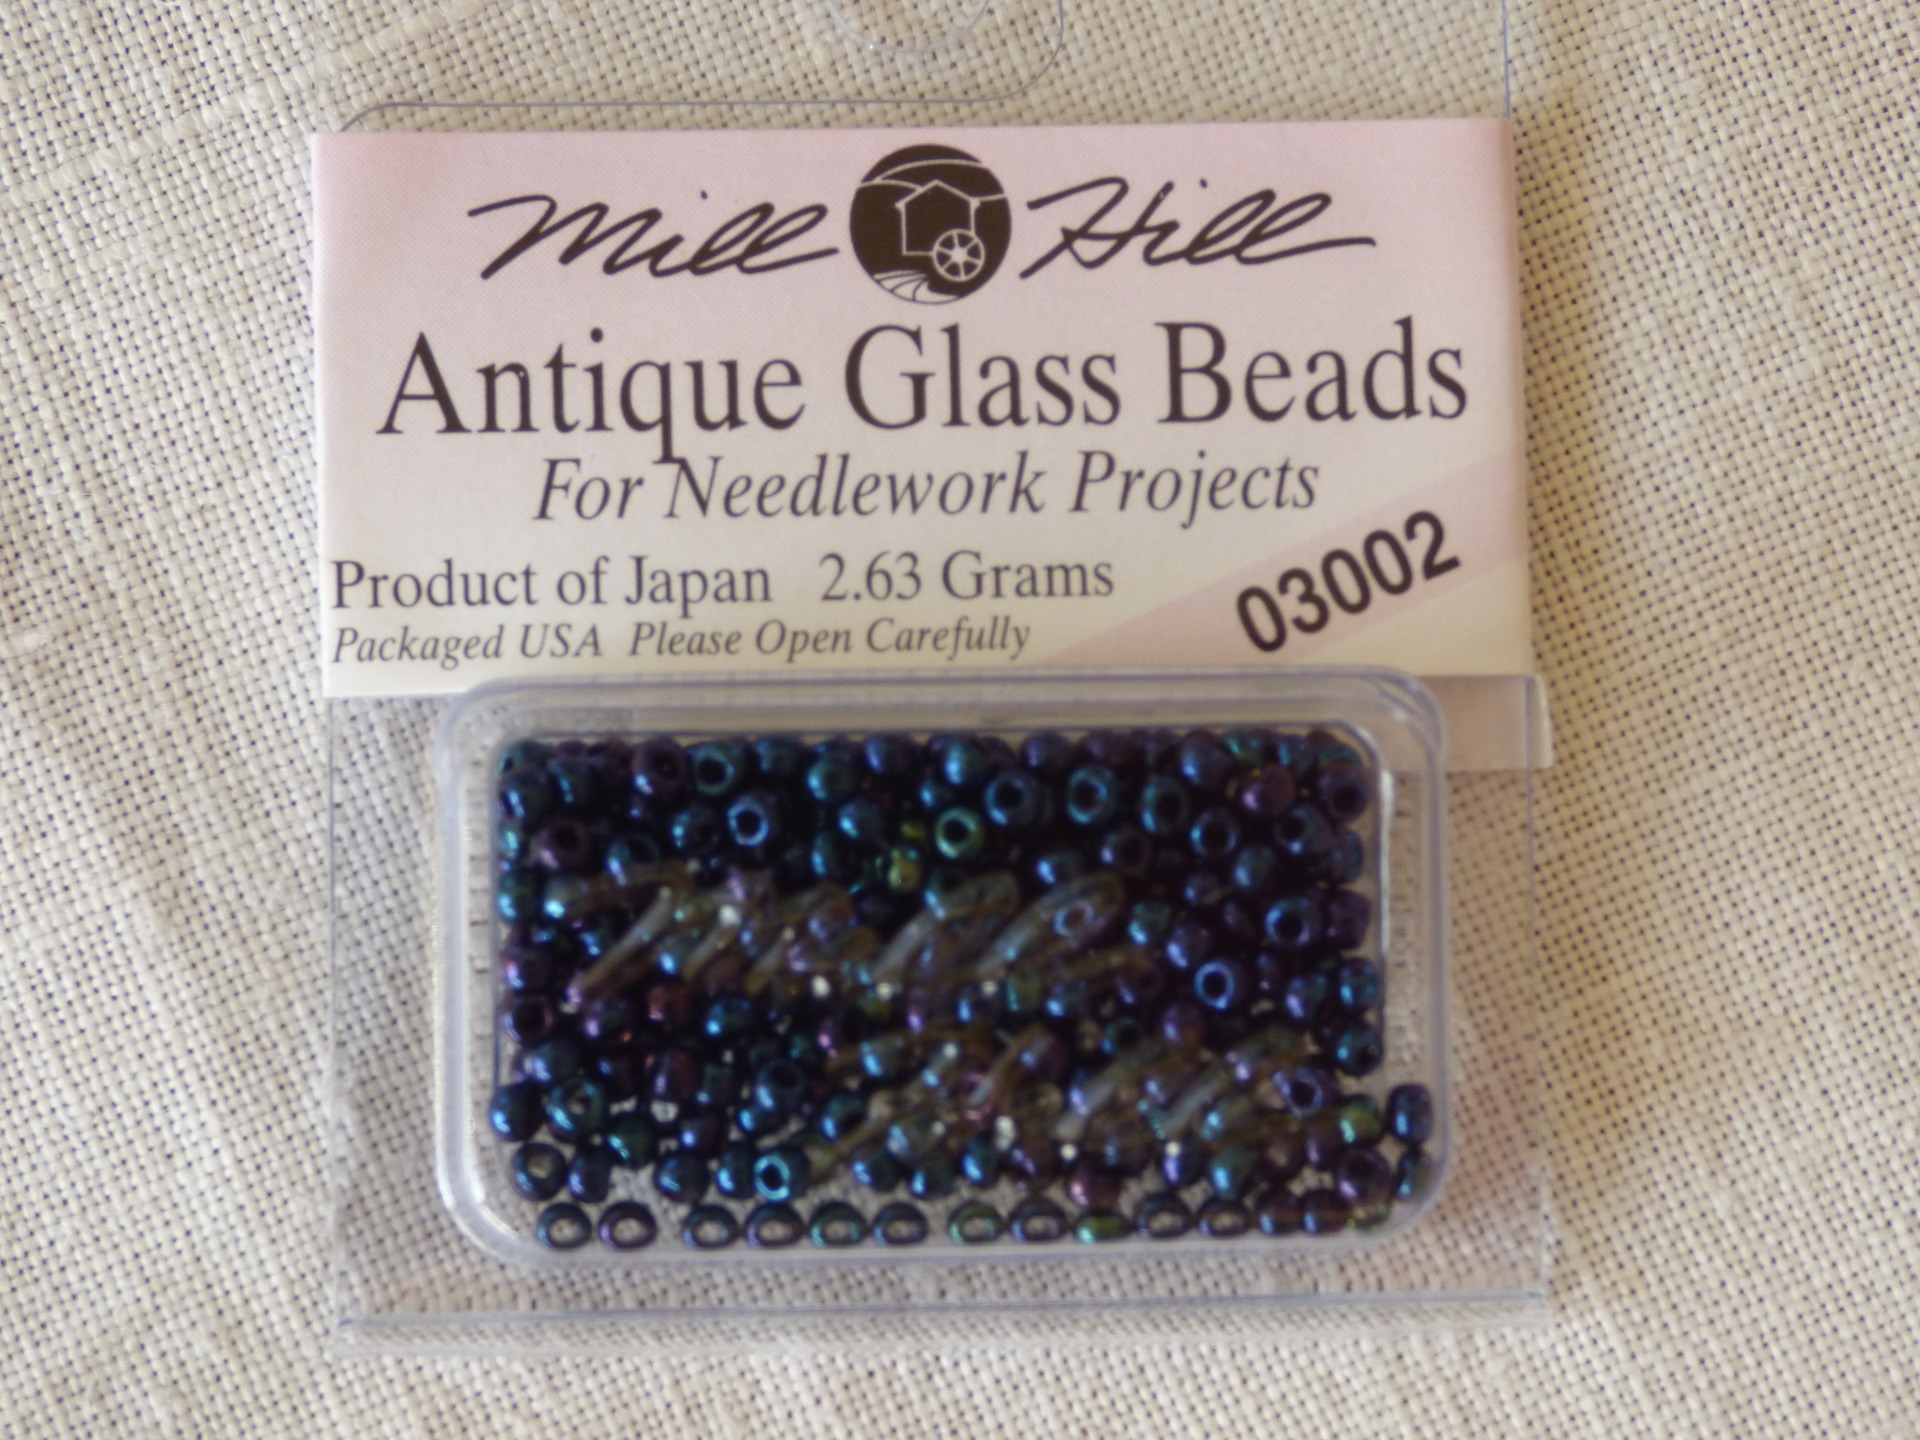 Perle Mill Hill Antique  Glass  Beads 03002